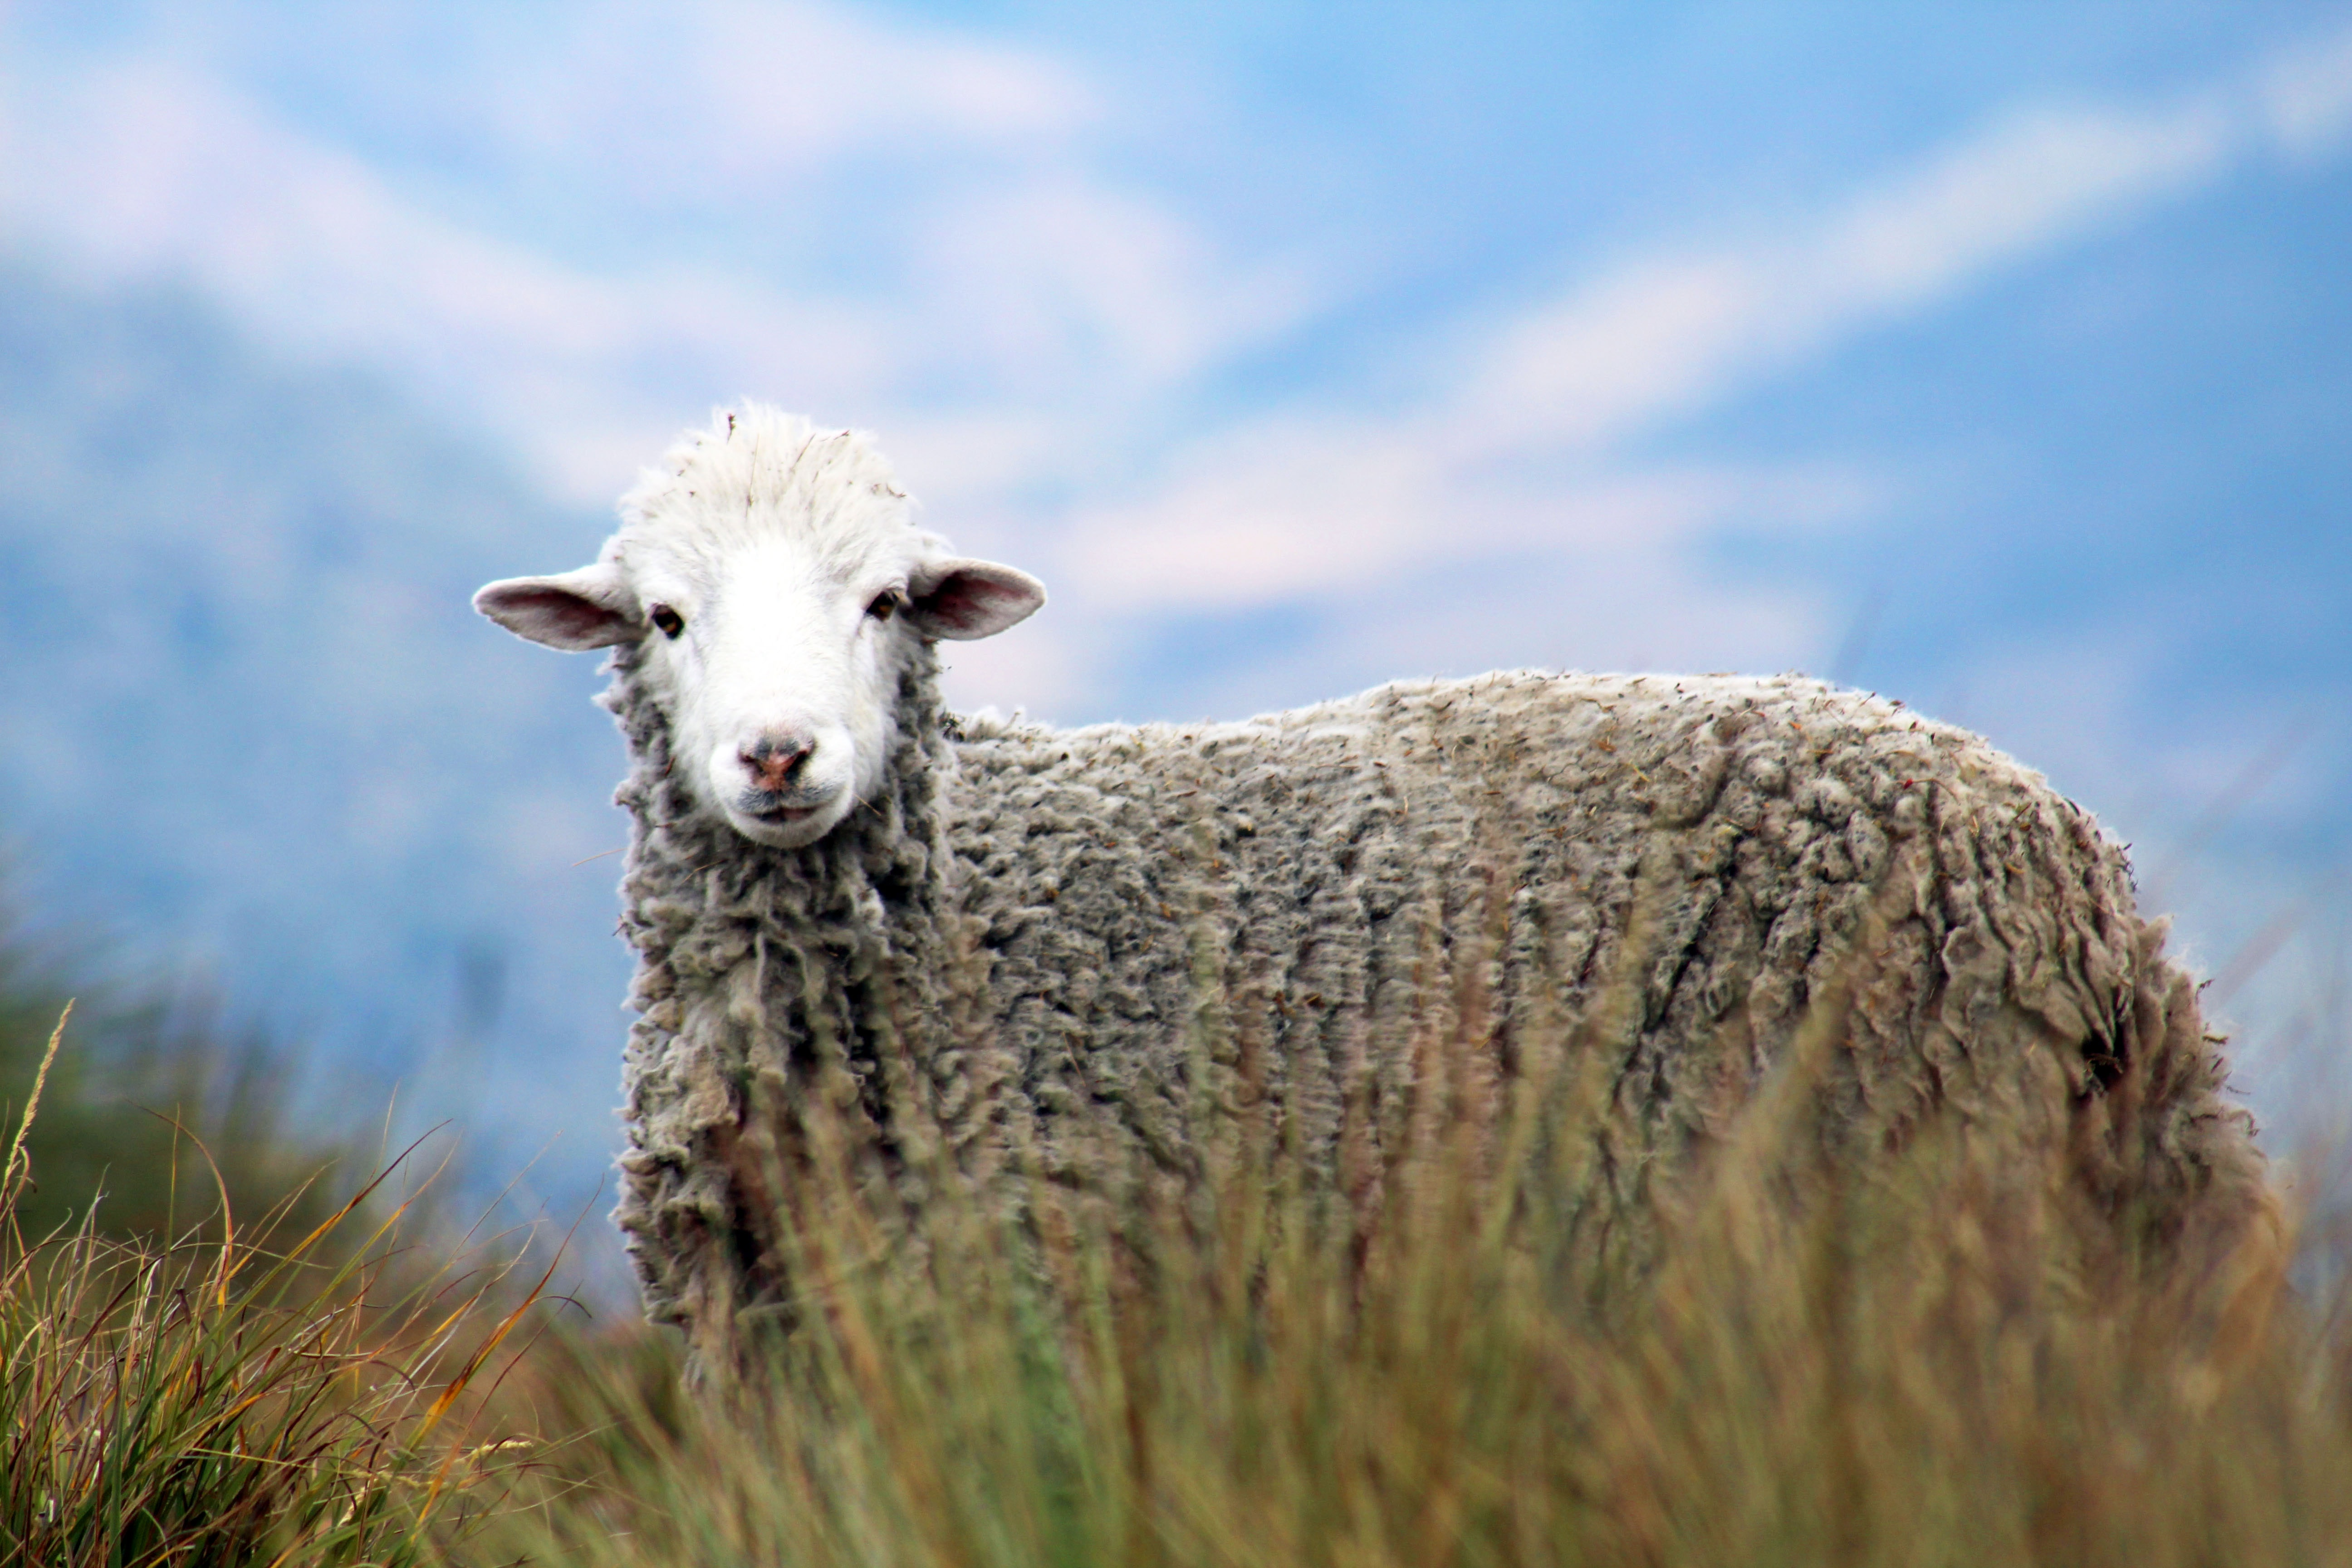 Brown Sheep on Grass in Auto Focus Photography, Outdoors, Pasture, Mammal, Livestock, HQ Photo